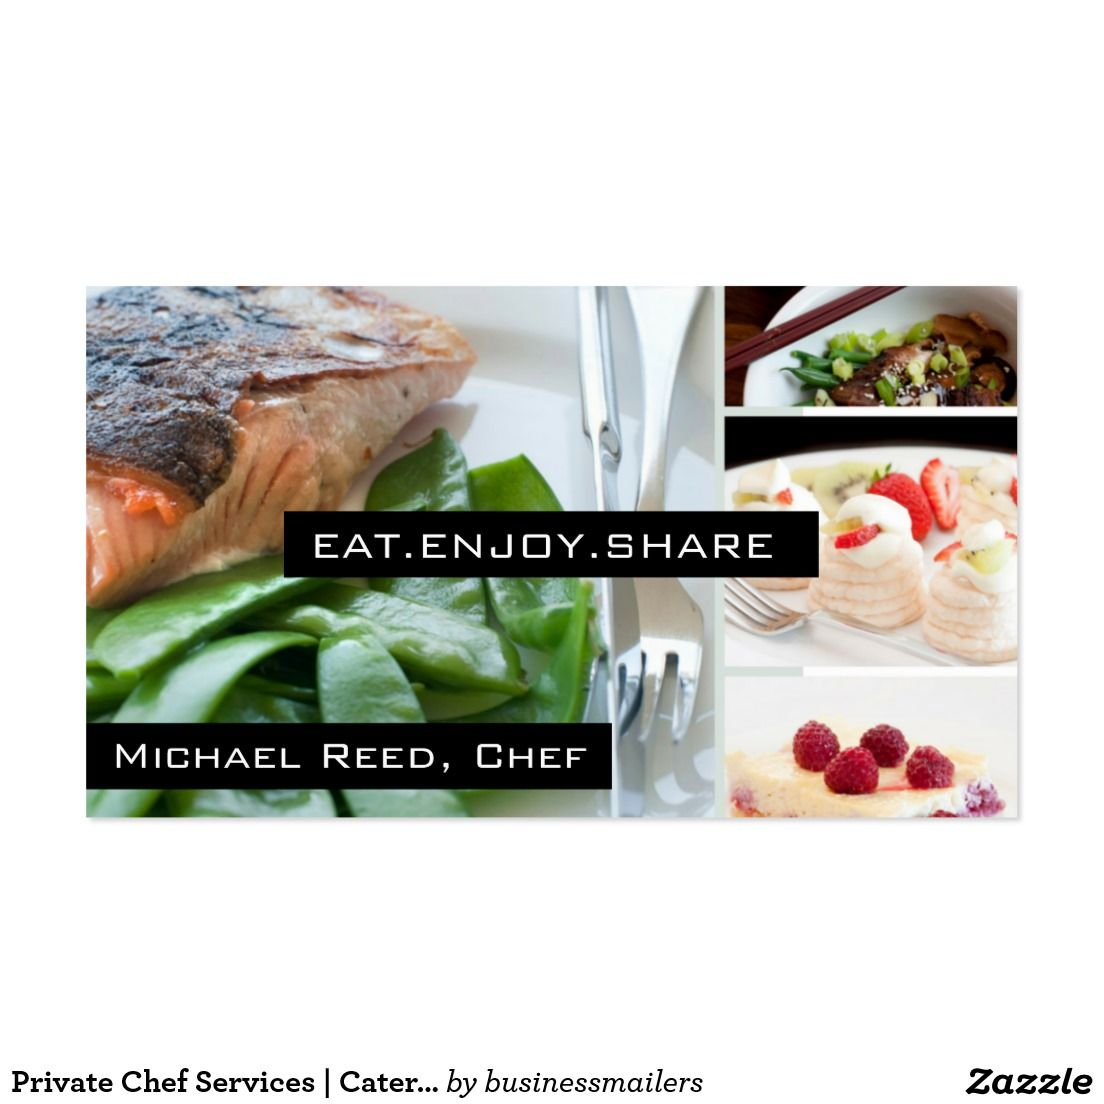 Private chef services catering business card sold thank you to private chef services catering business card sold thank you to the customer in ca reheart Gallery